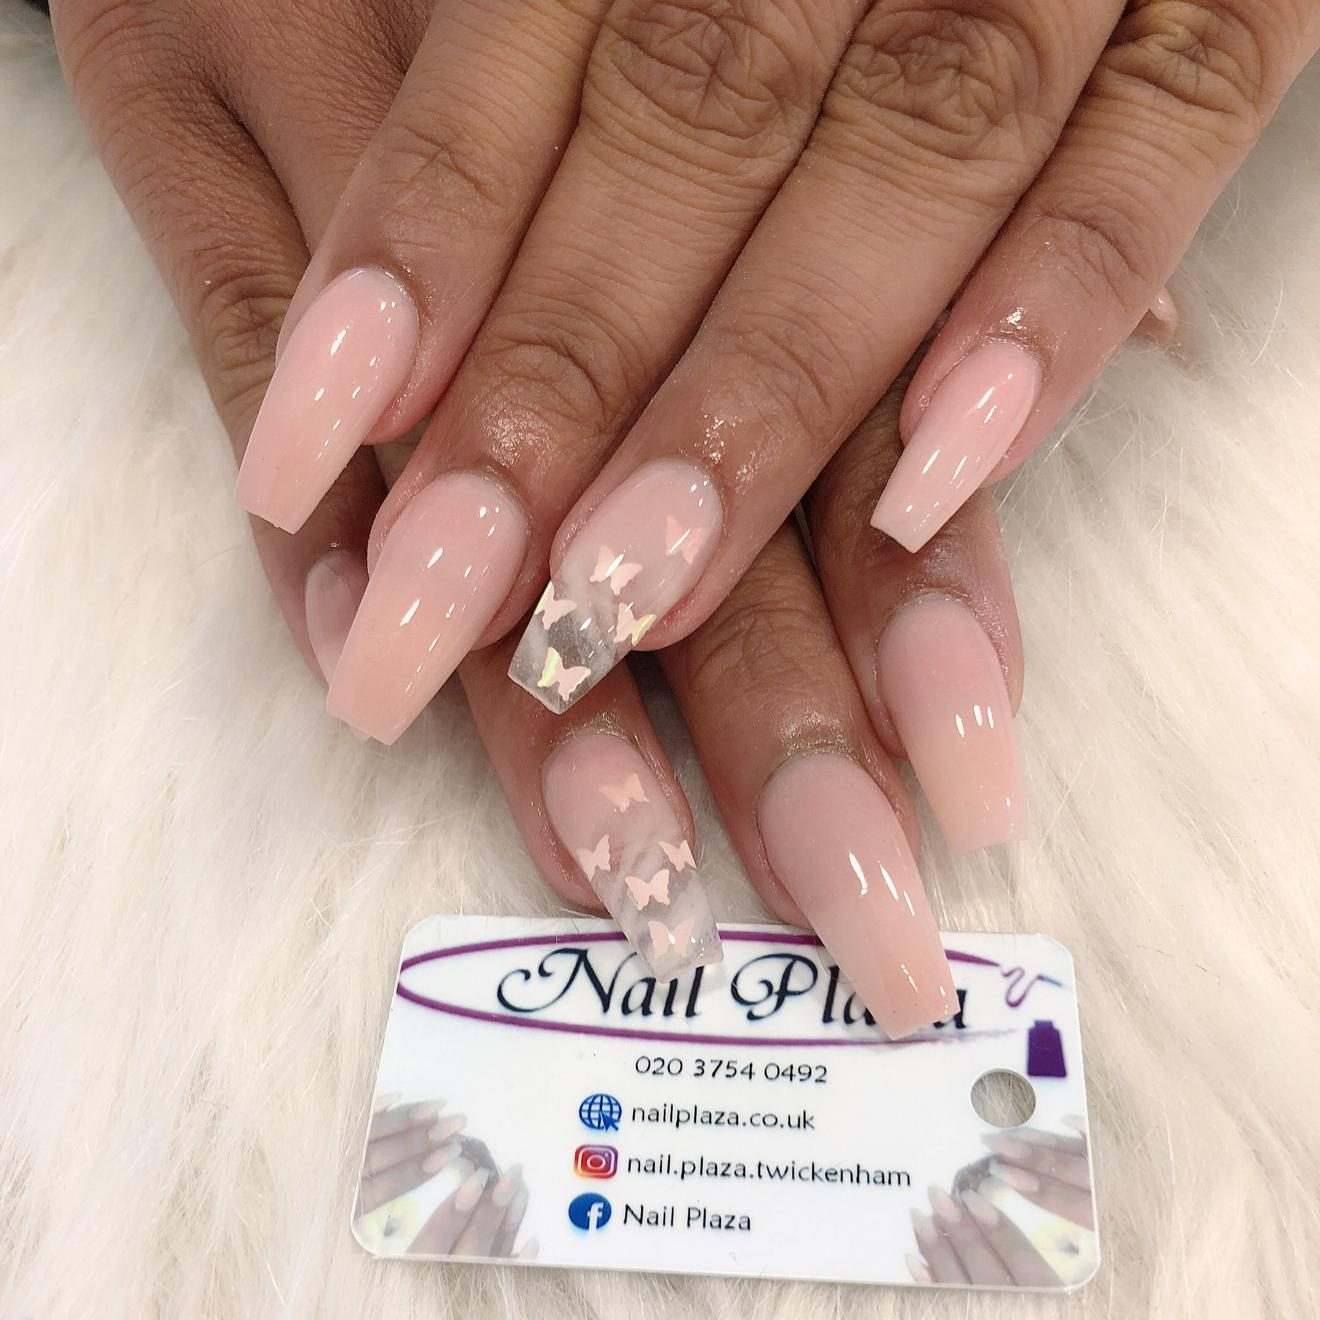 nail-plaza-twickenham-nail-design-061120-16